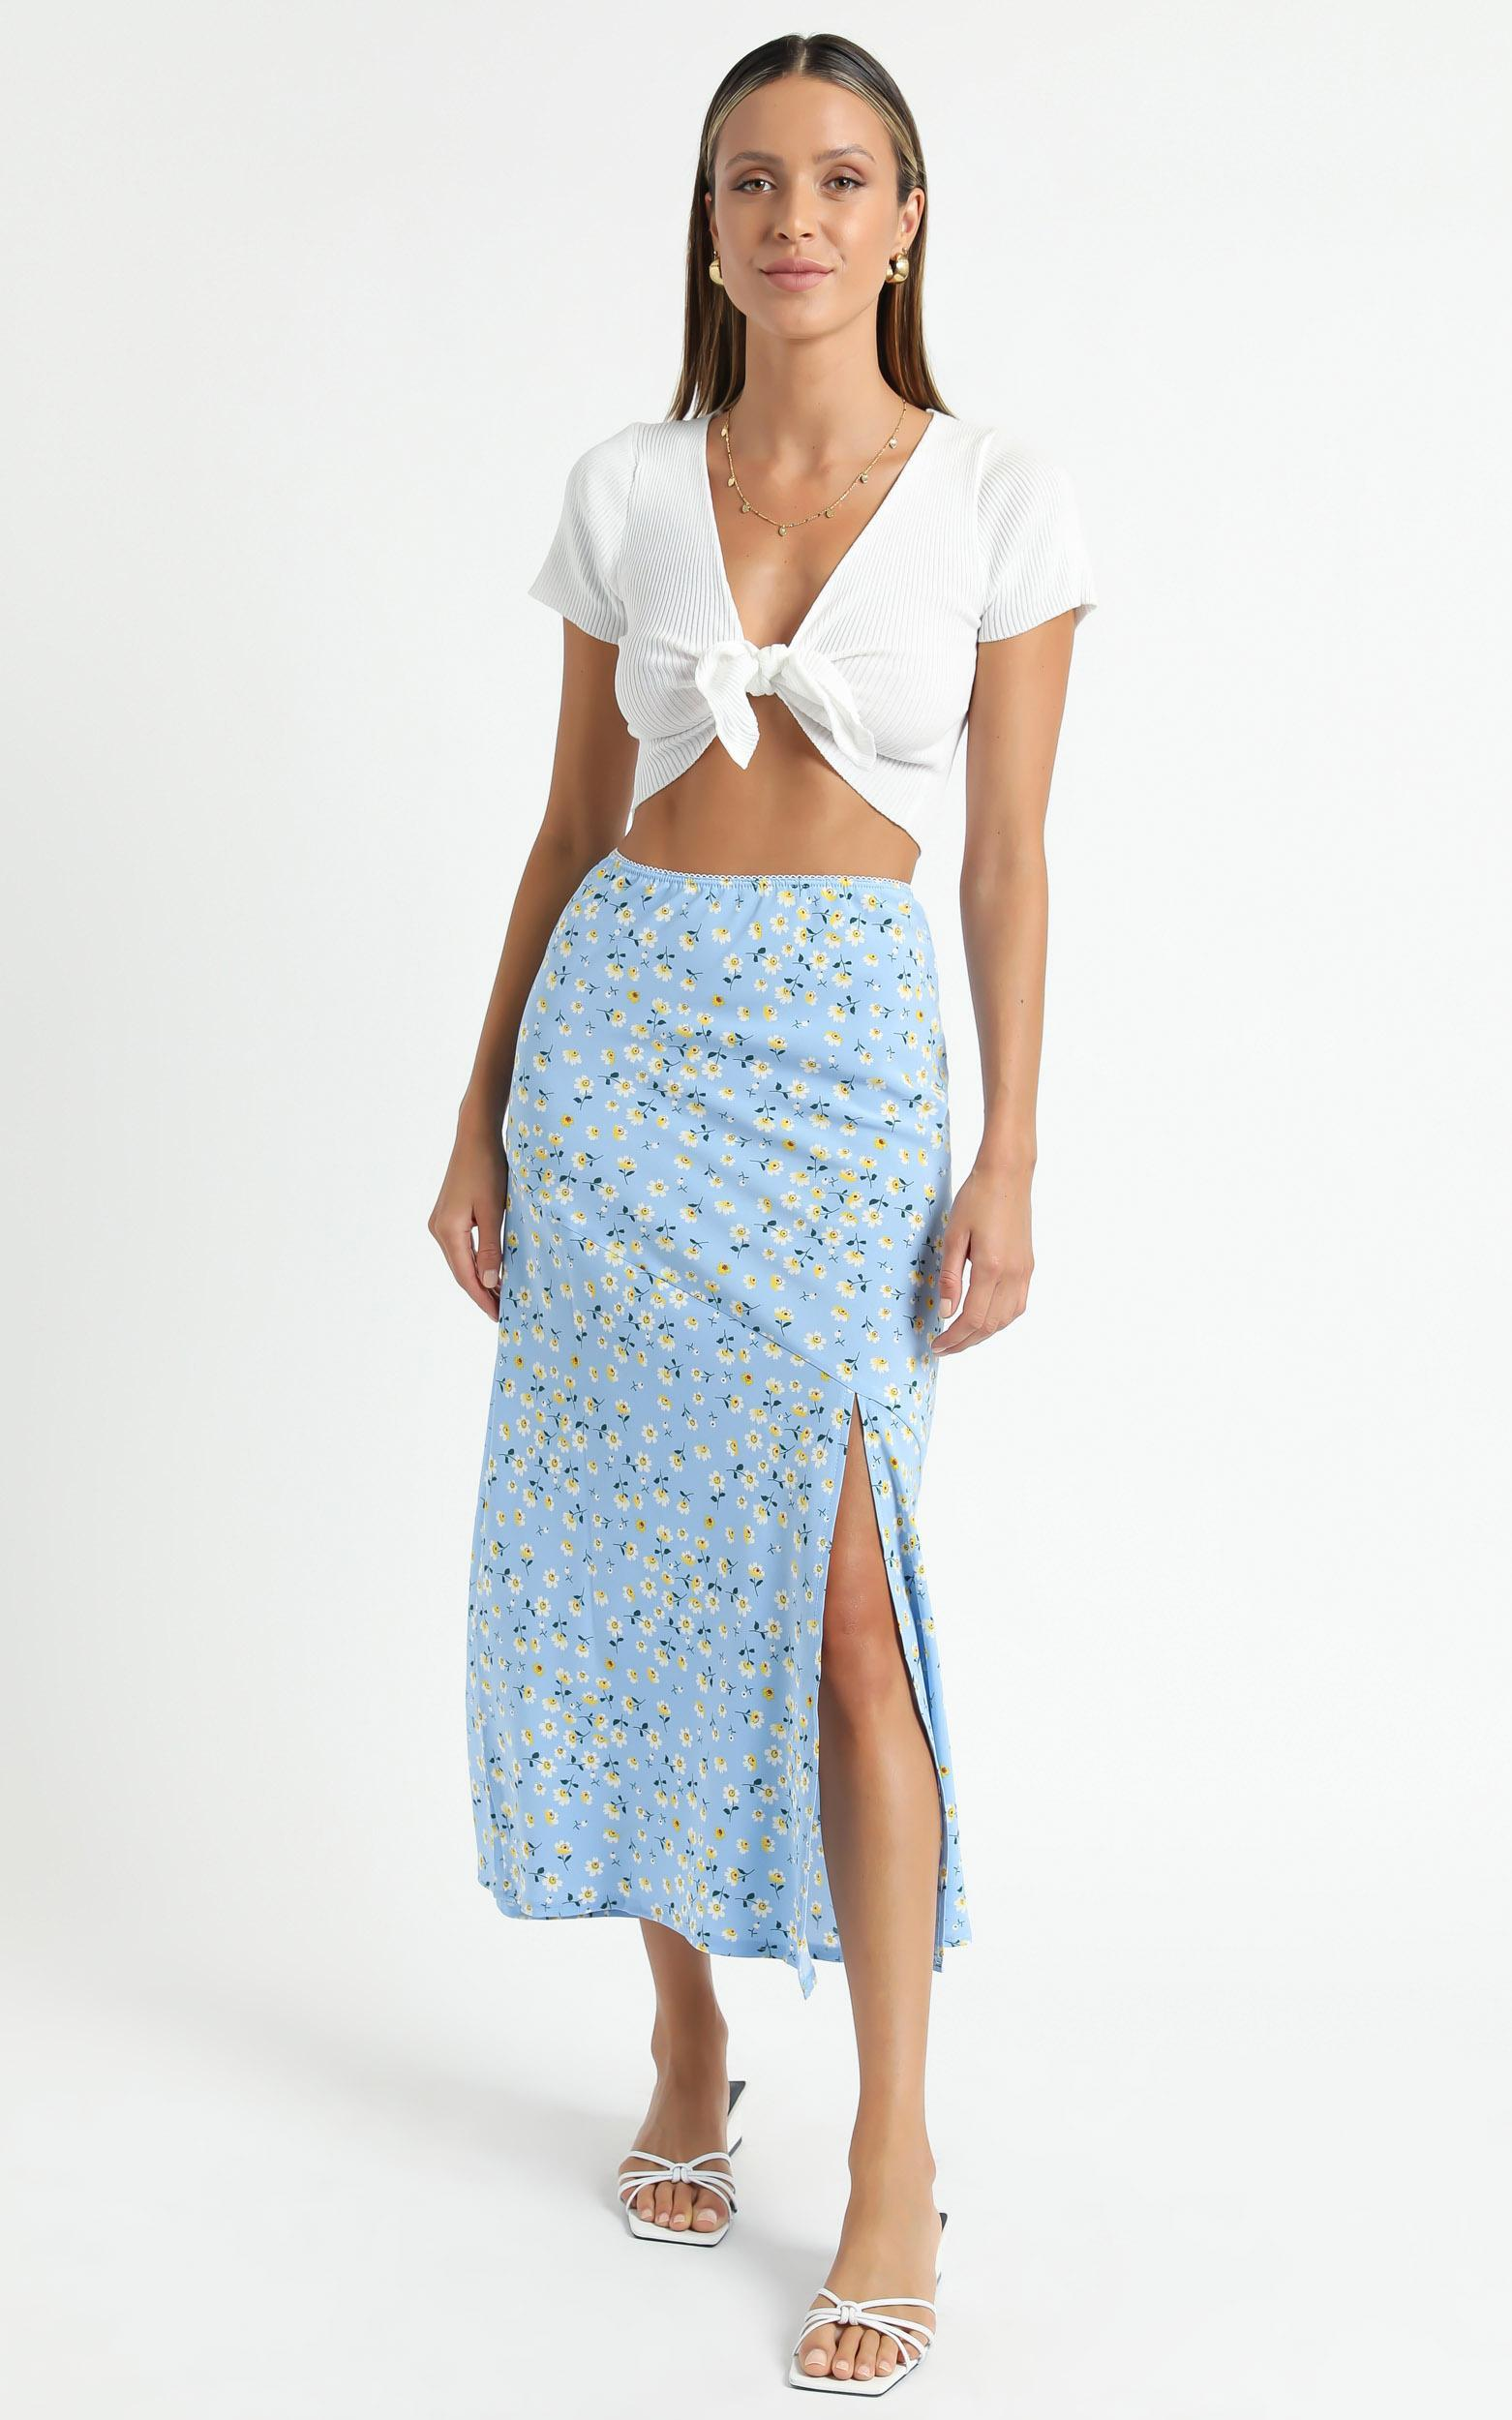 Massachusetts Skirt in Blue Floral - 6 (XS), Blue, hi-res image number null